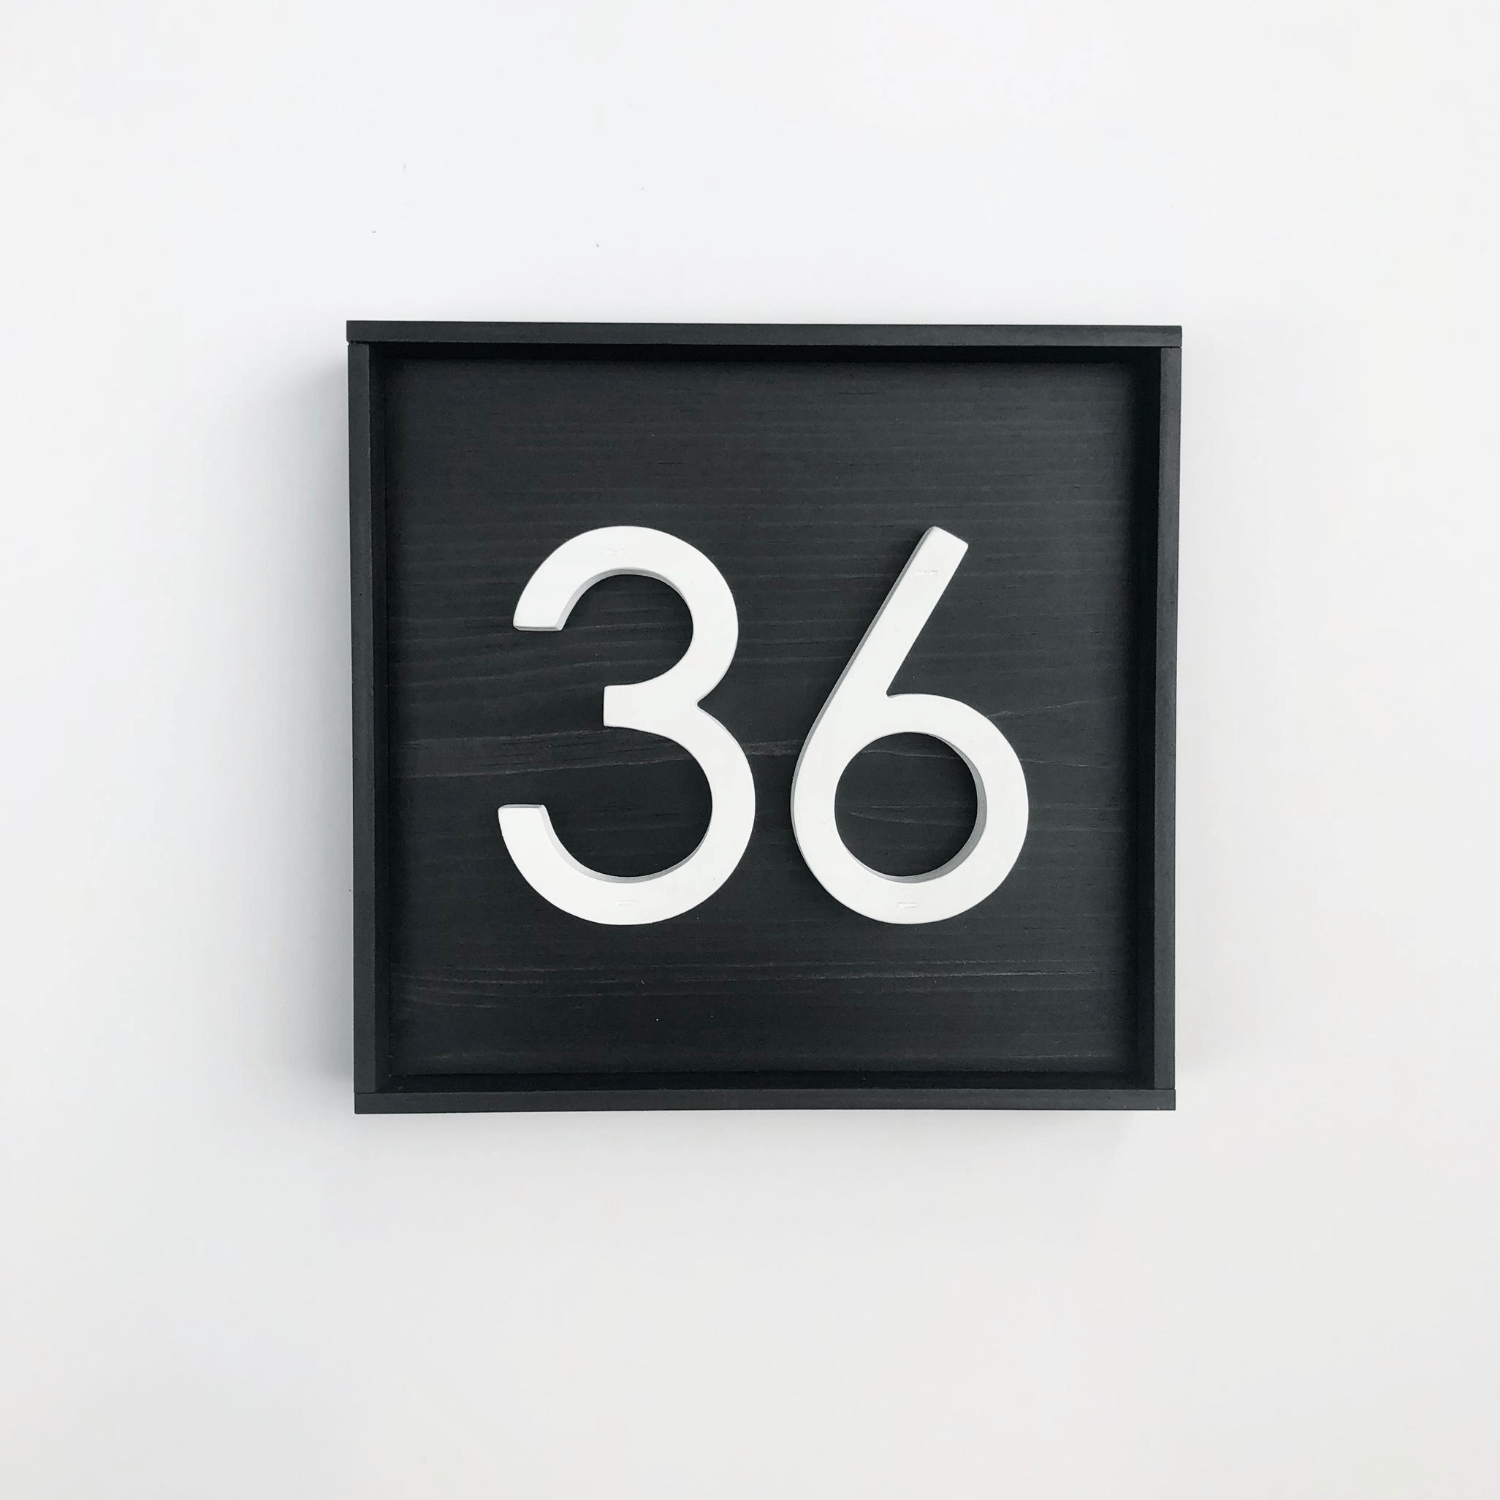 Square wood address sign with black base with 2 modern white PVC numbers